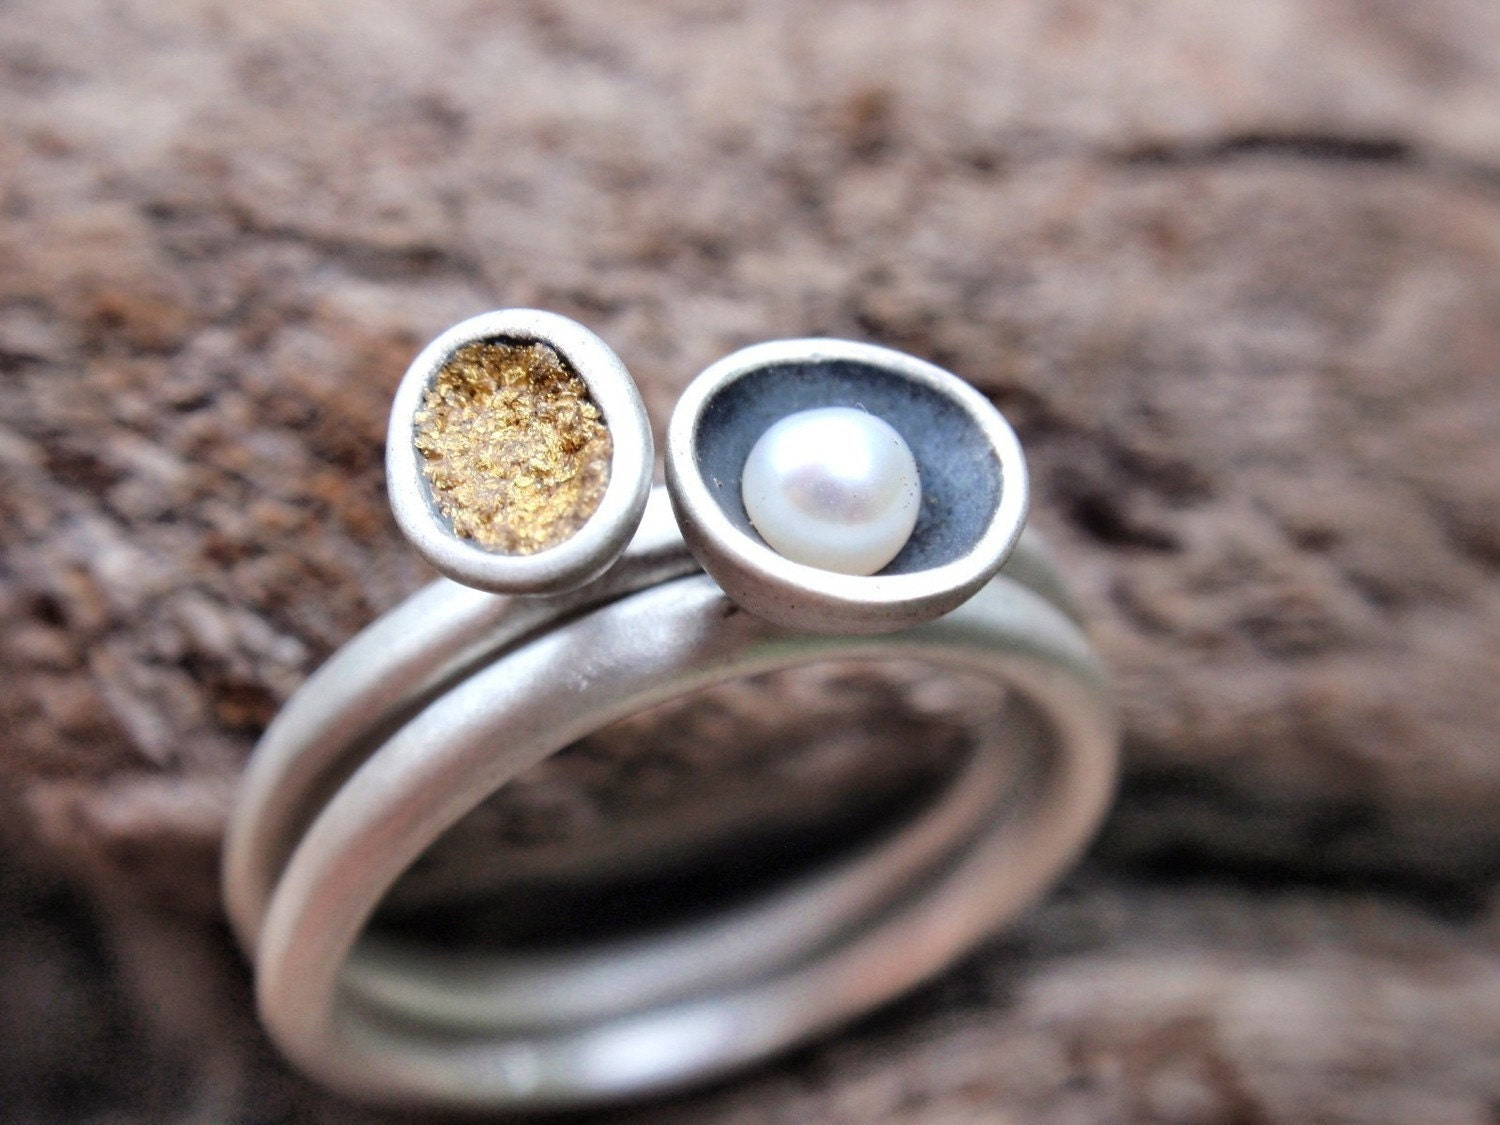 sterling silver stacking rings - set of 2 - made to order